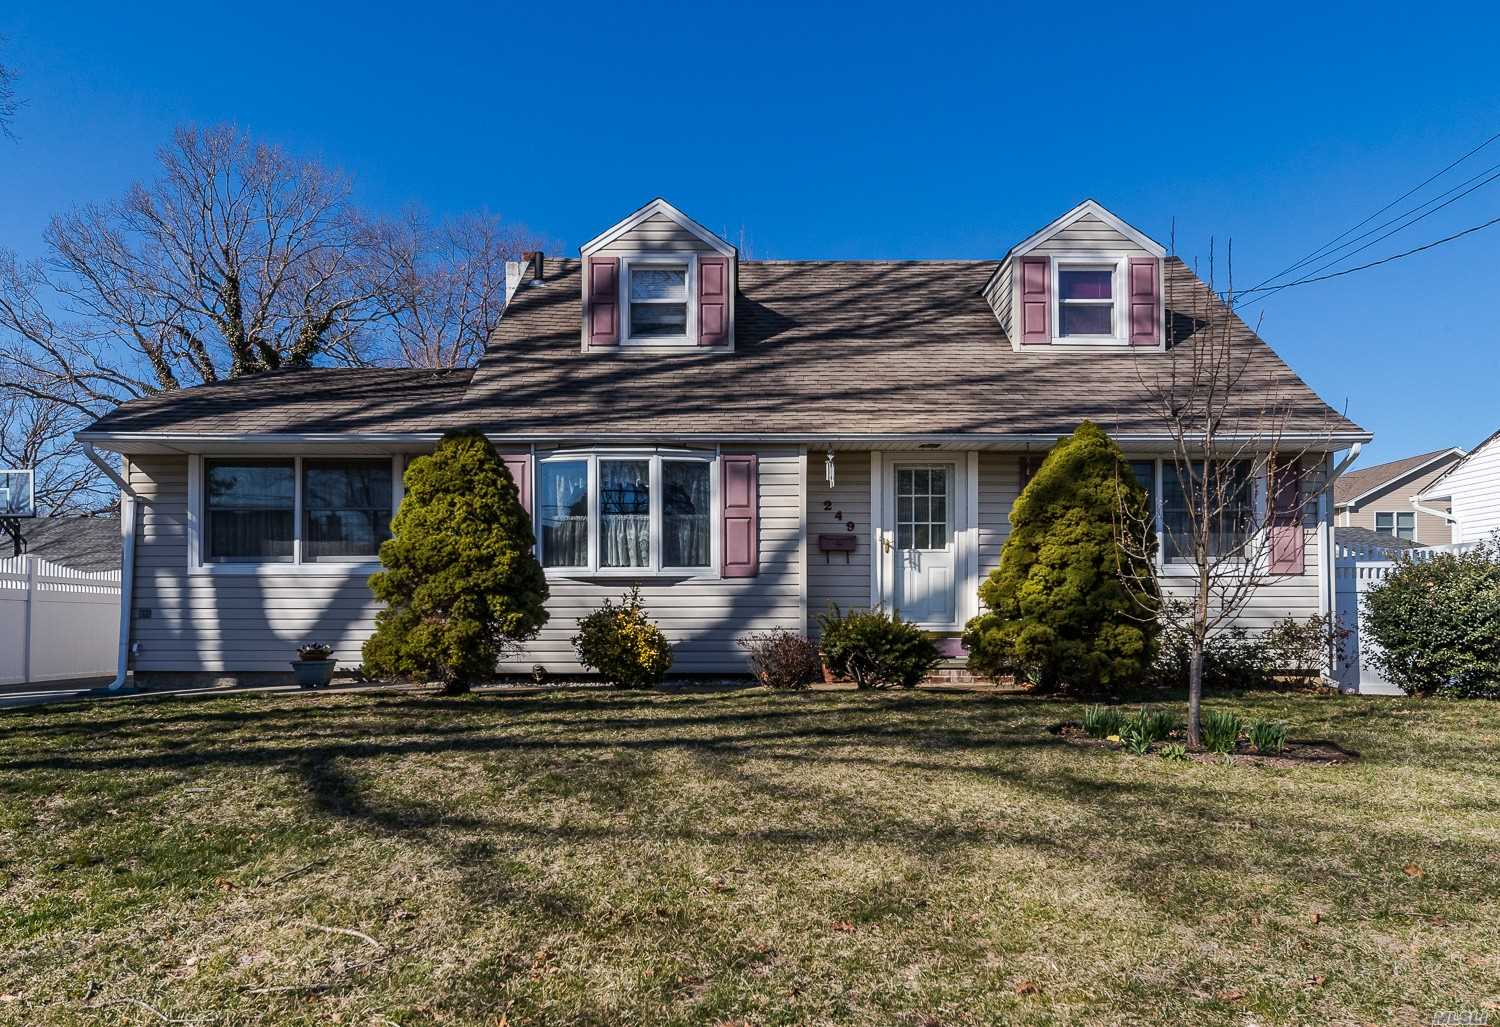 Large Expanded Cape In the Heart of Desirable Incorporated Village of Massapequa Park. Mid Block Location. Features Large Dining Room and Family Room. New Full Bath on lst Floor. Expanded driveway to 1 1/2 Car Garage, with nice yard. Taxes are being grieved, All Info should be verified. House is sold as is.  garage. House is sold as is.